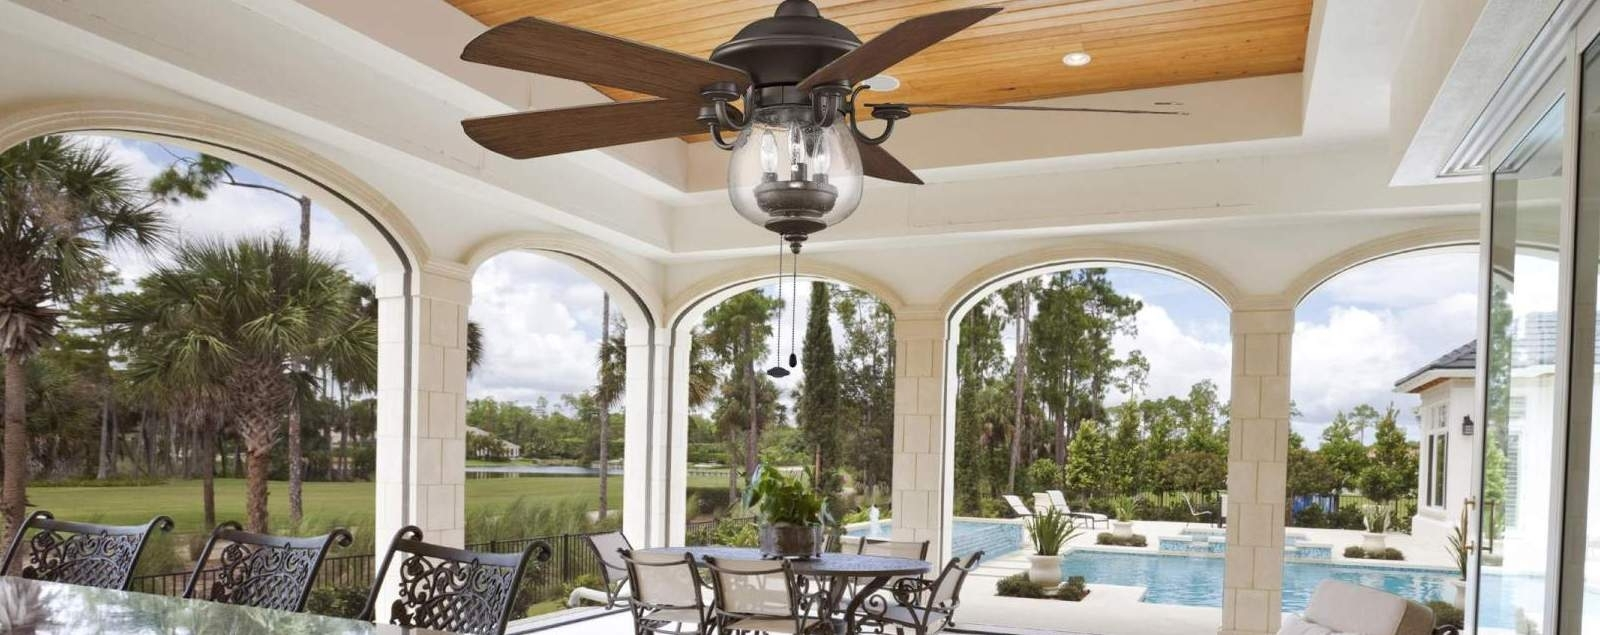 Outdoor Ceiling Fans – Shop Wet, Dry, And Damp Rated Outdoor Fans Regarding Trendy Outdoor Ceiling Fans With Covers (Gallery 5 of 20)